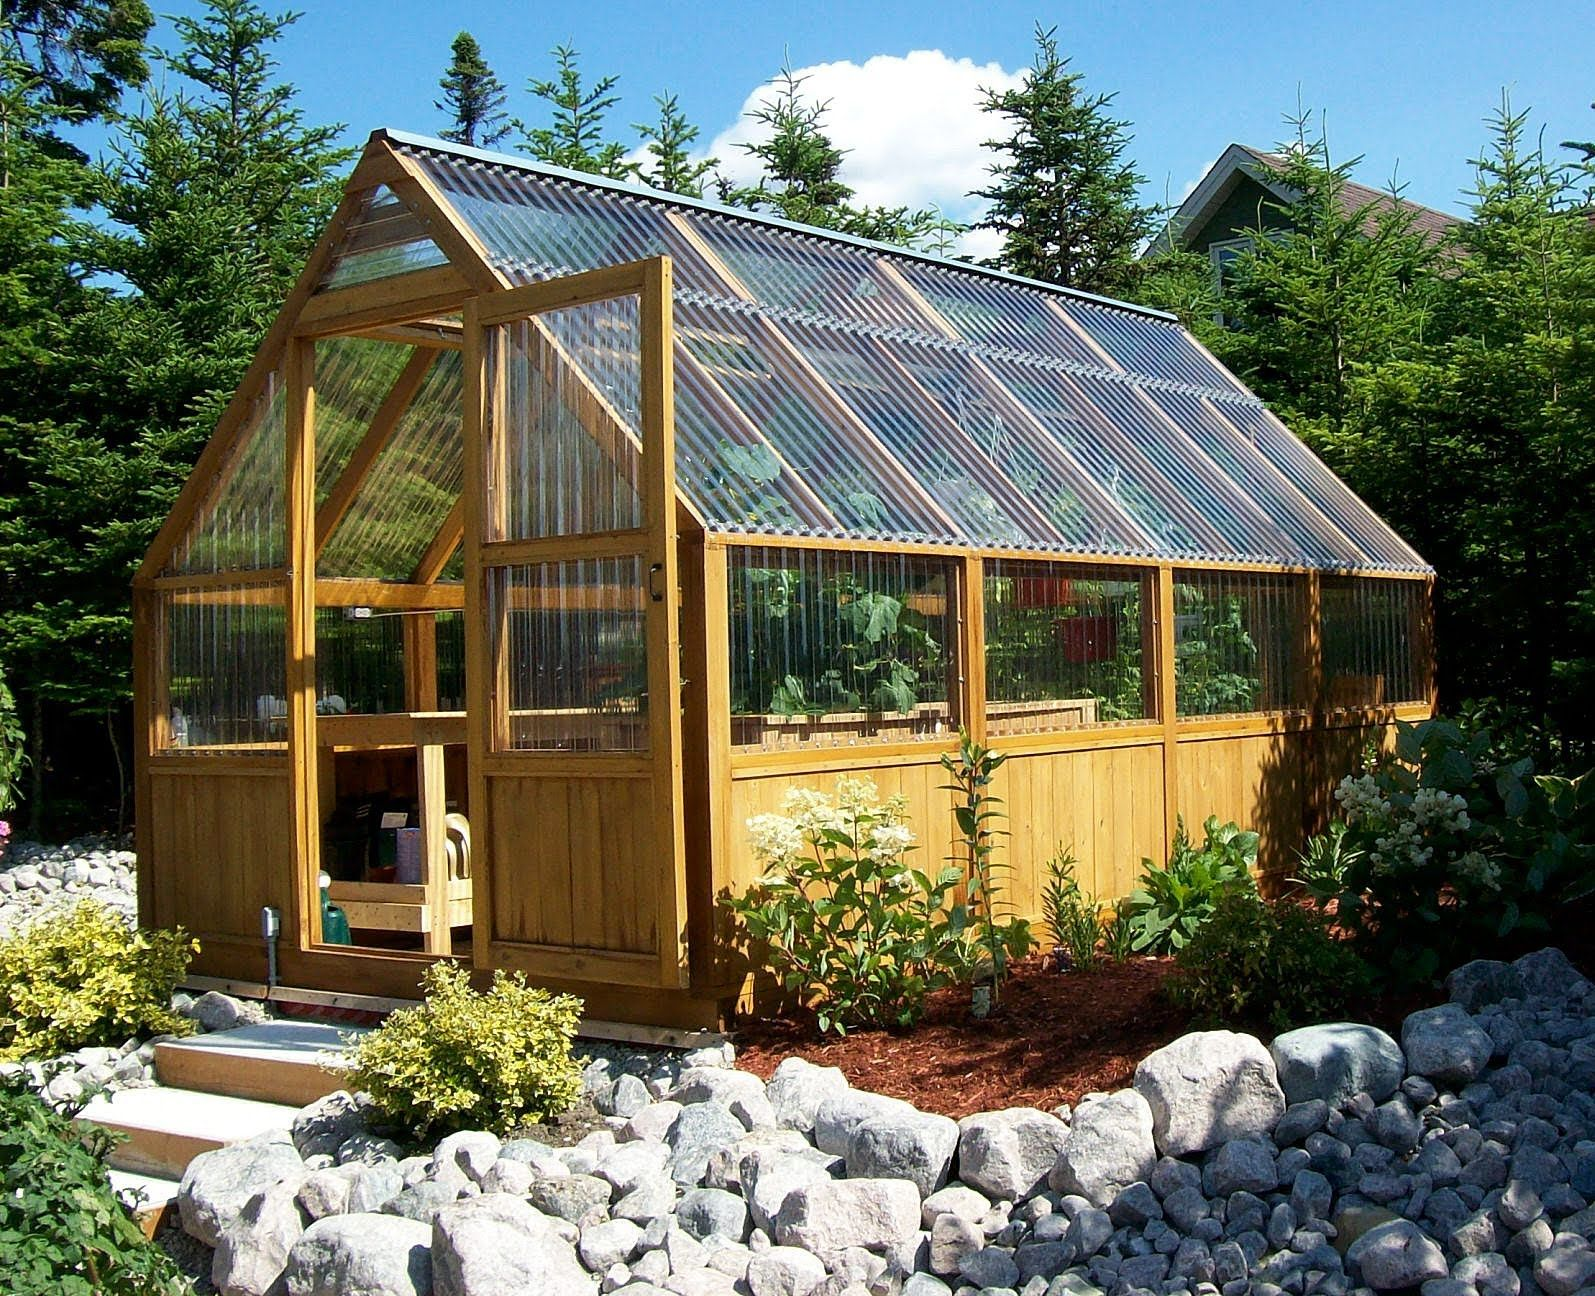 greenhouse plans how to build a diy hobby greenhouse detailed step by - Greenhouse Design Ideas